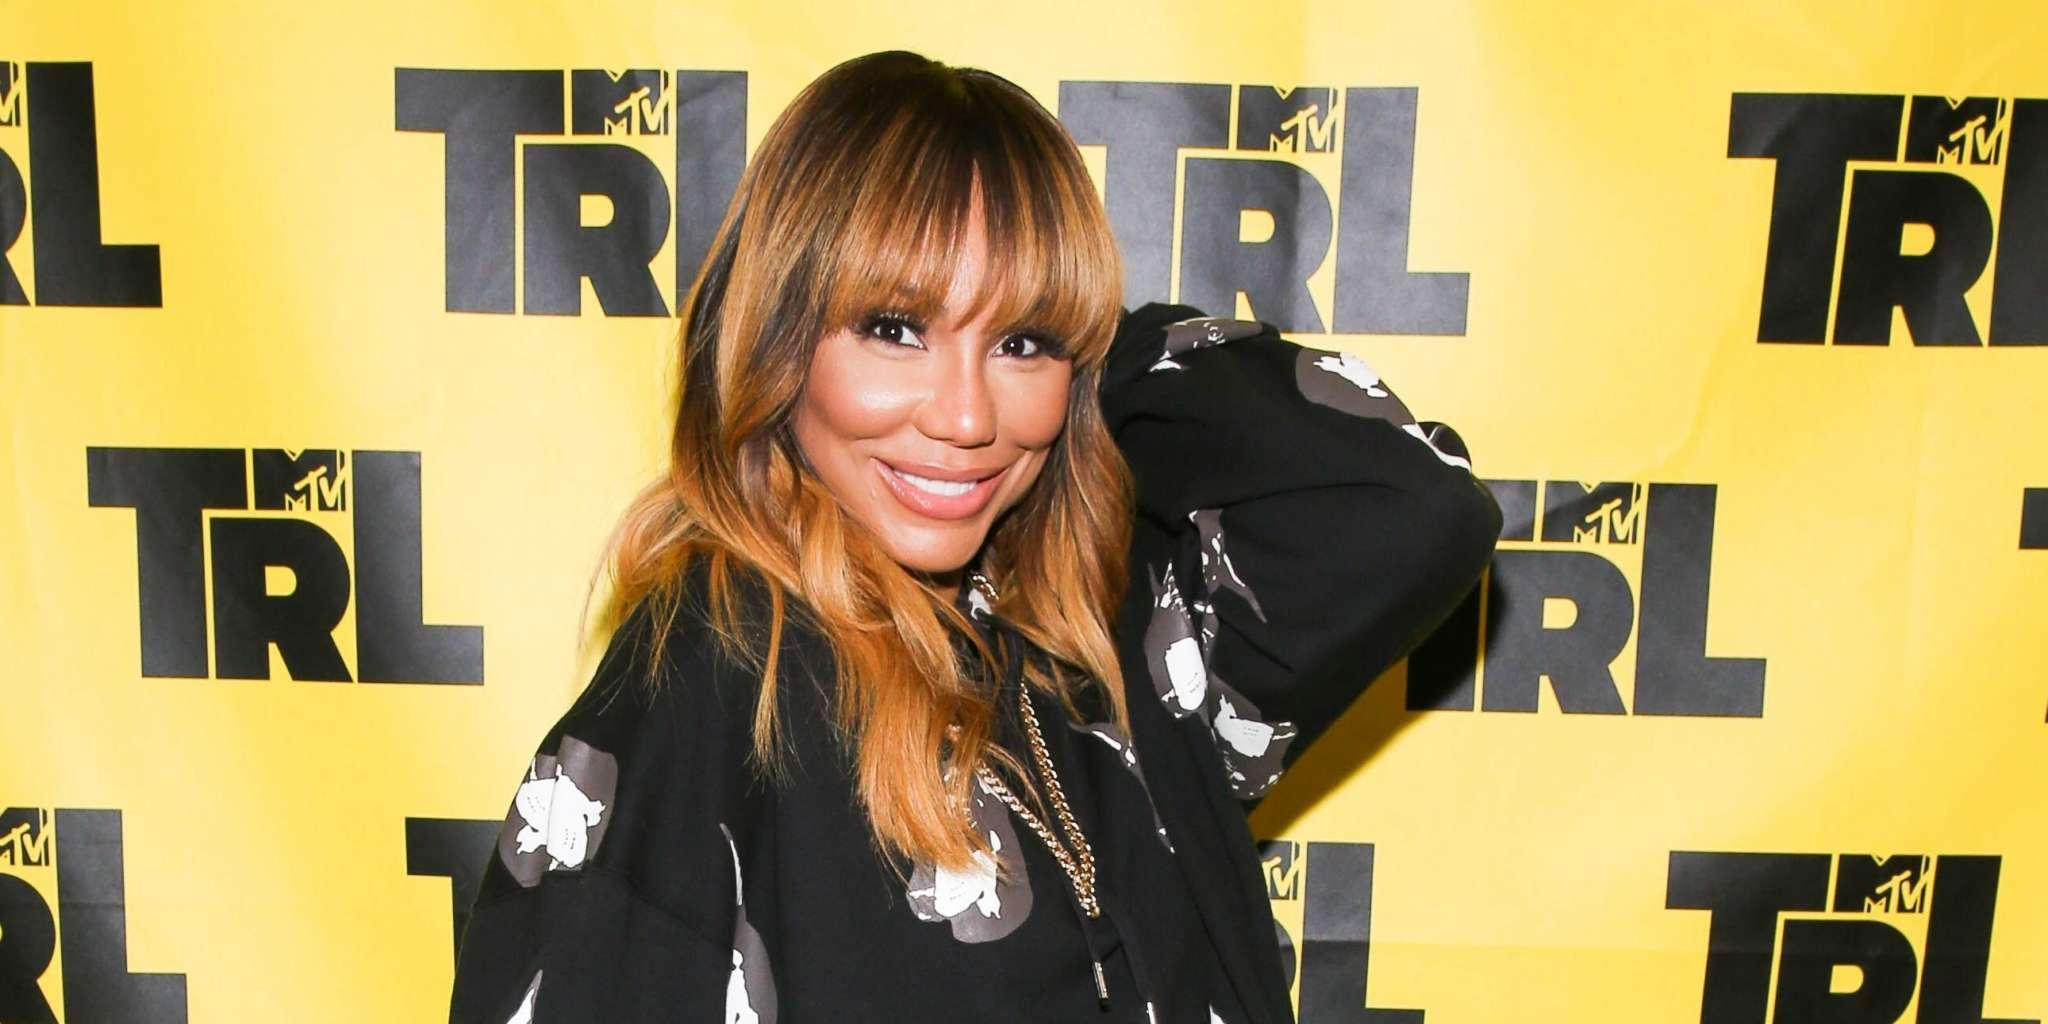 Tamar Braxton's Wish For 2020 Is A Baby Girl - Here's Her Message